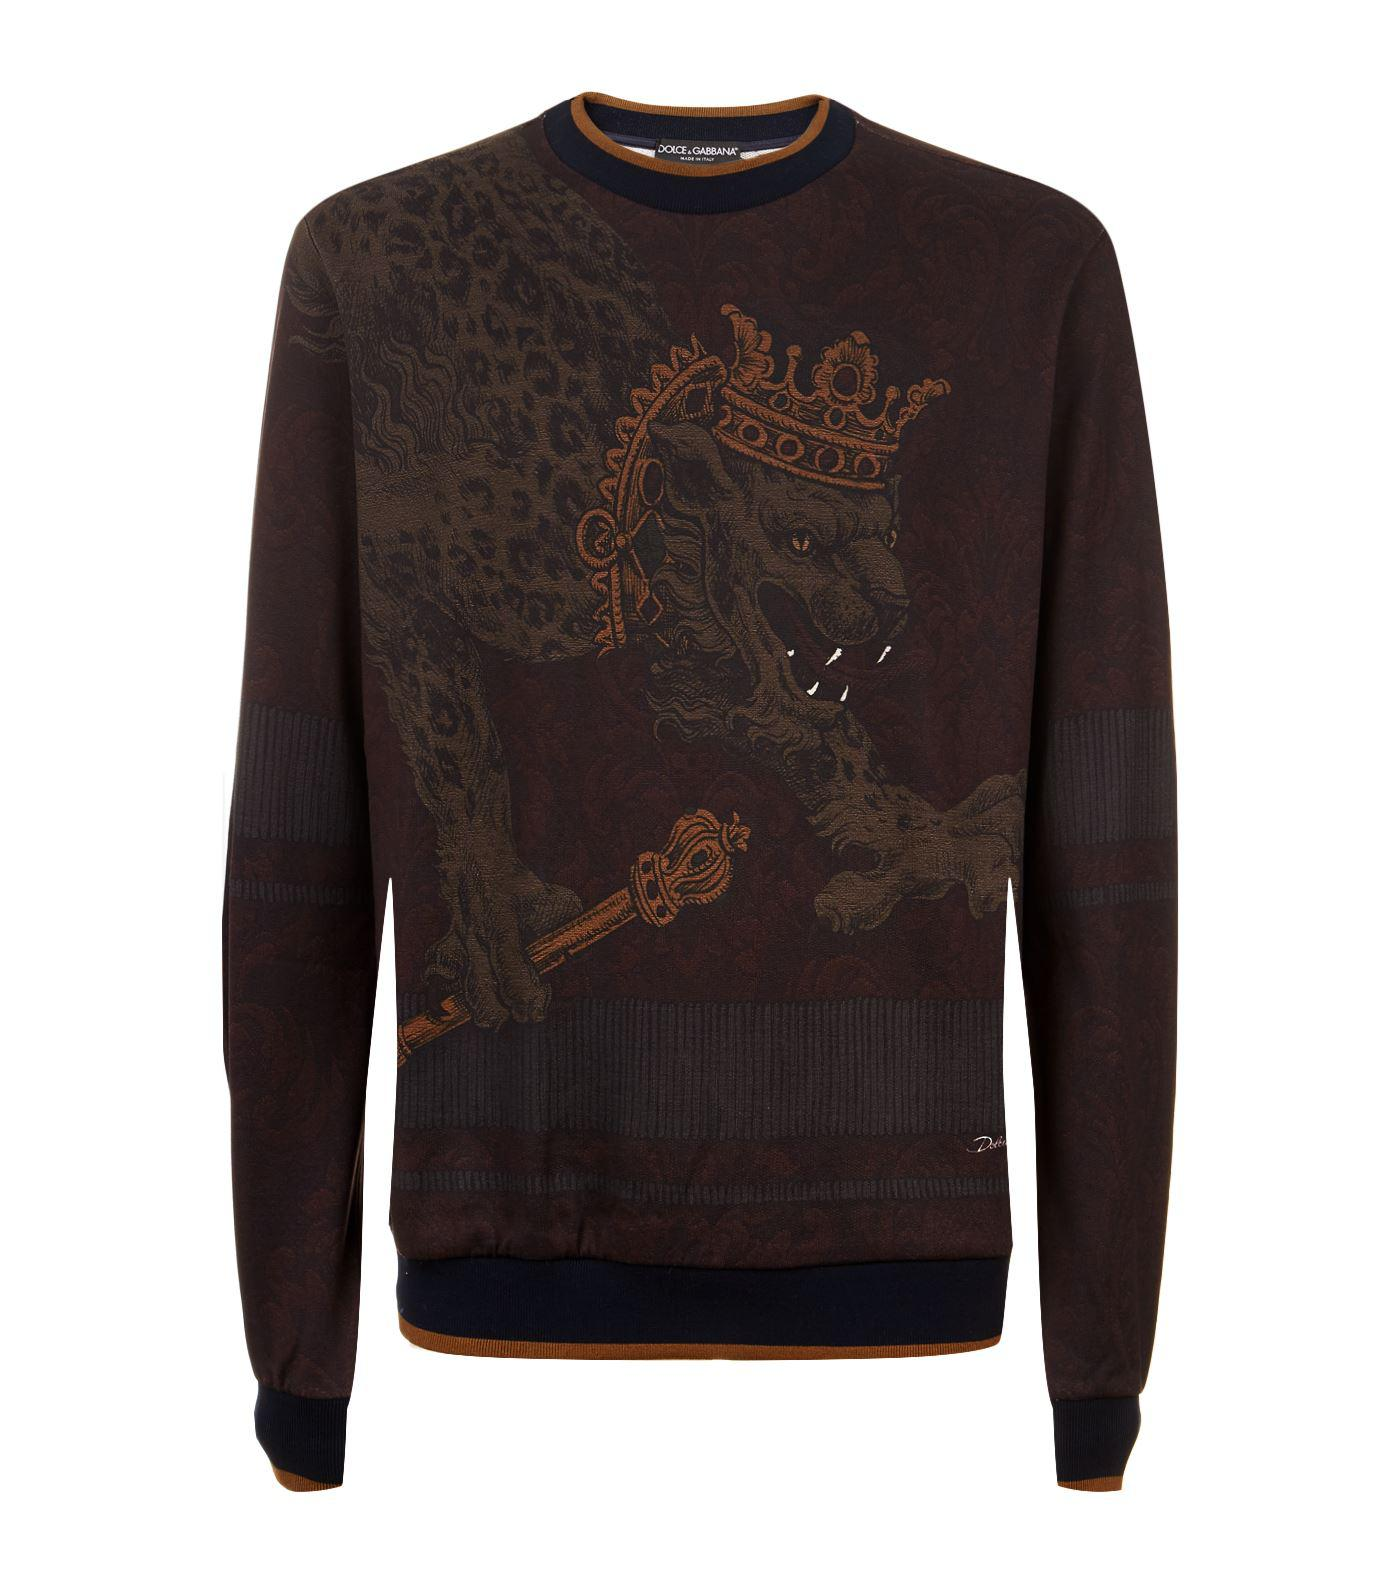 72a3ae6d Dolce & Gabbana Crowned Lion Sweatshirt for Men - Lyst